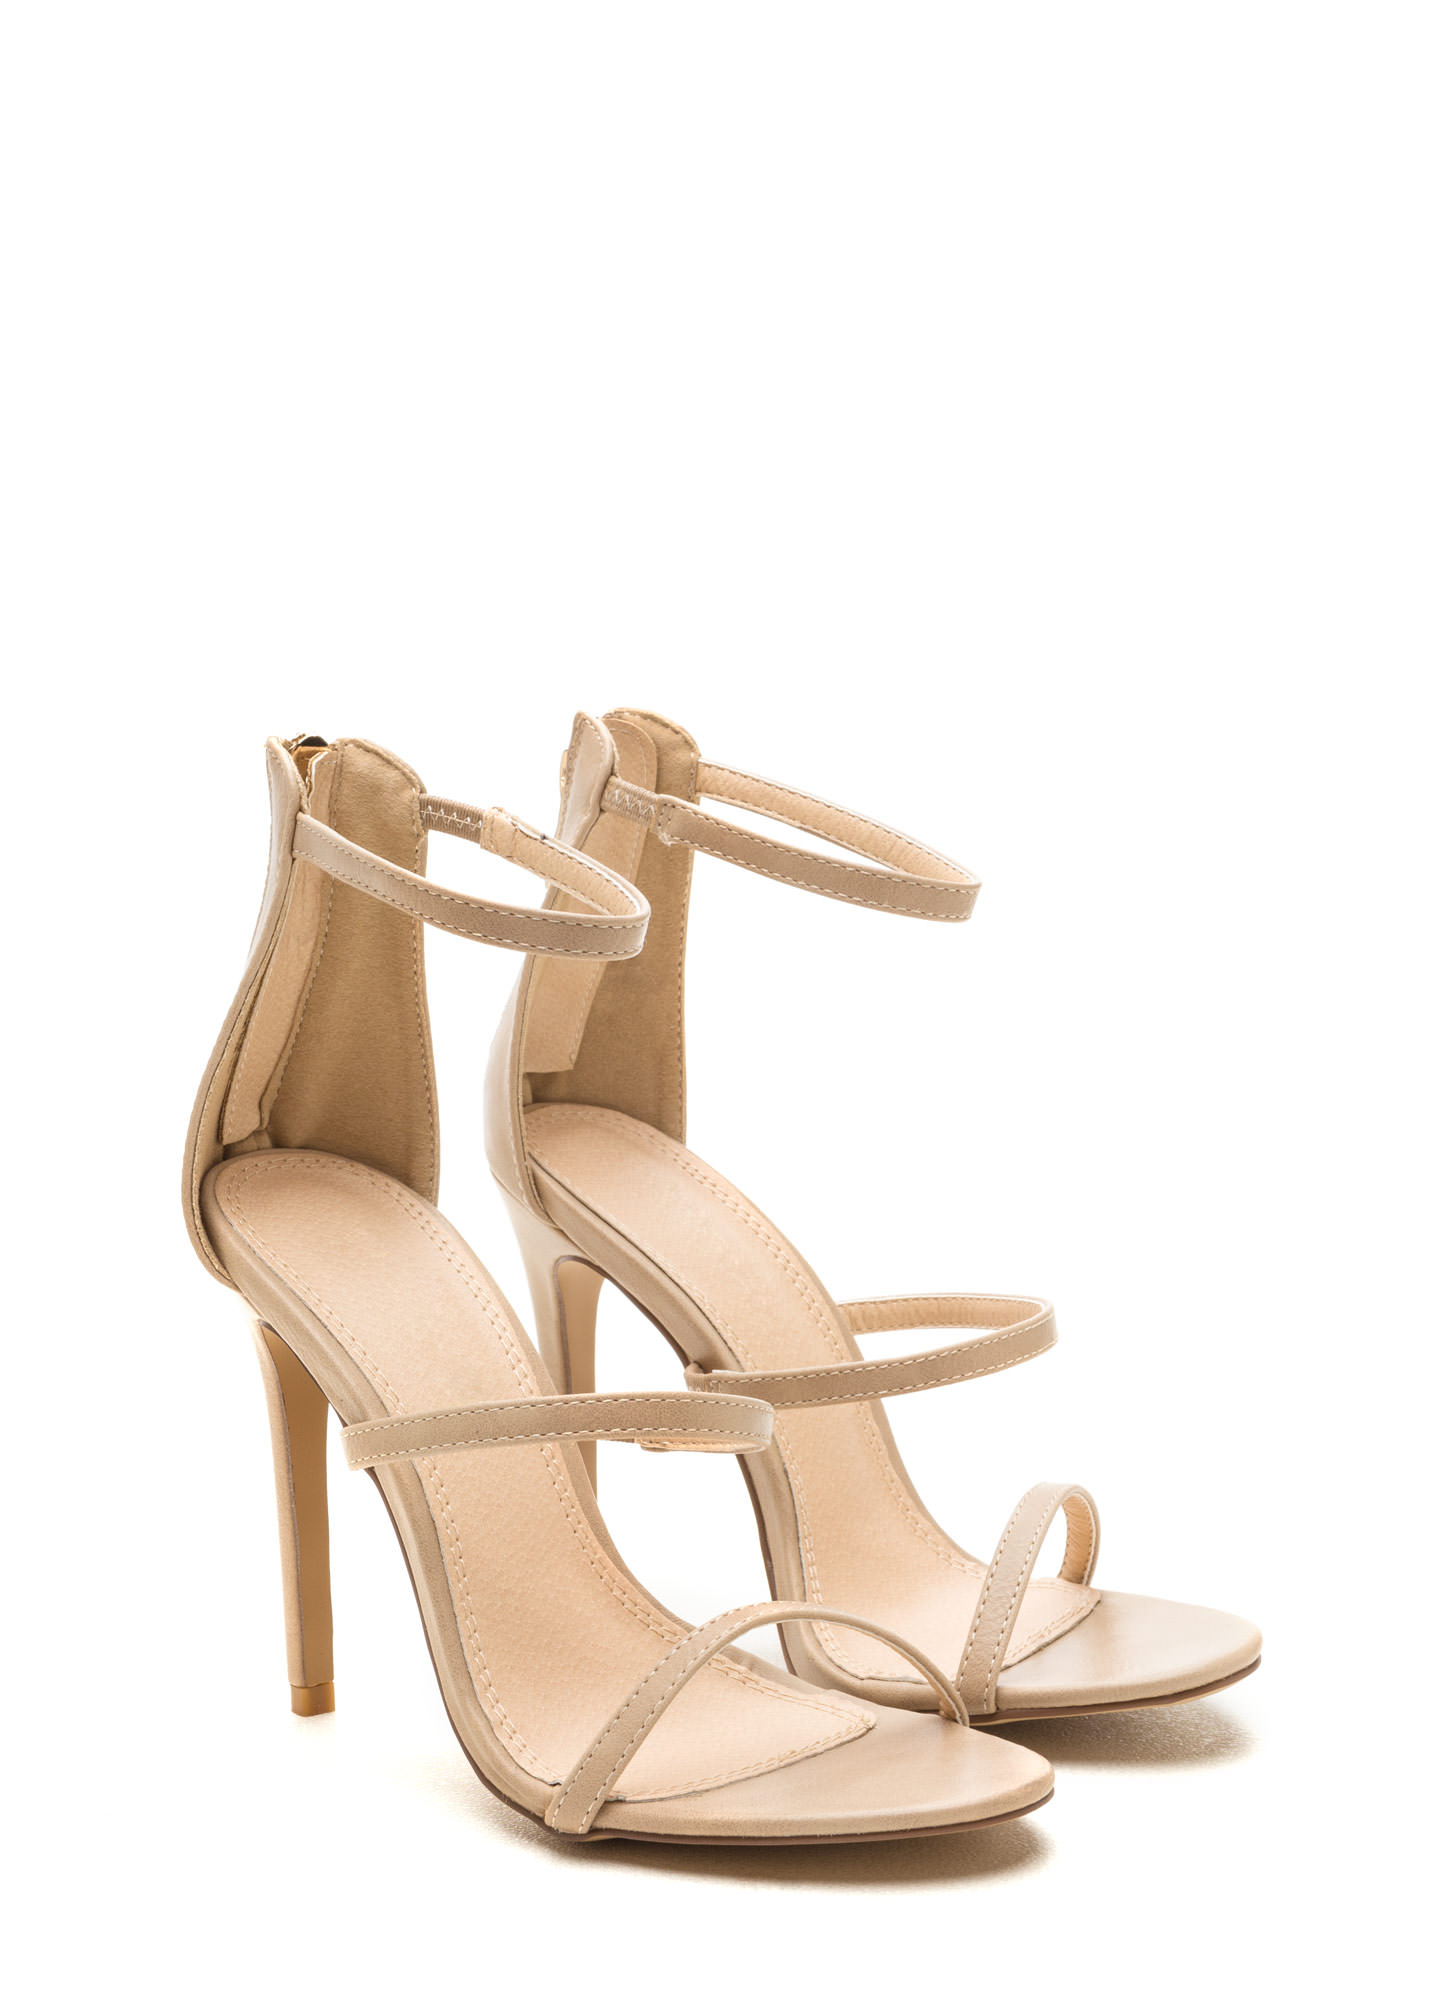 Strappy Life Single-Sole Heels BLACK COBALT TAN NEONCORAL BLUSH ...